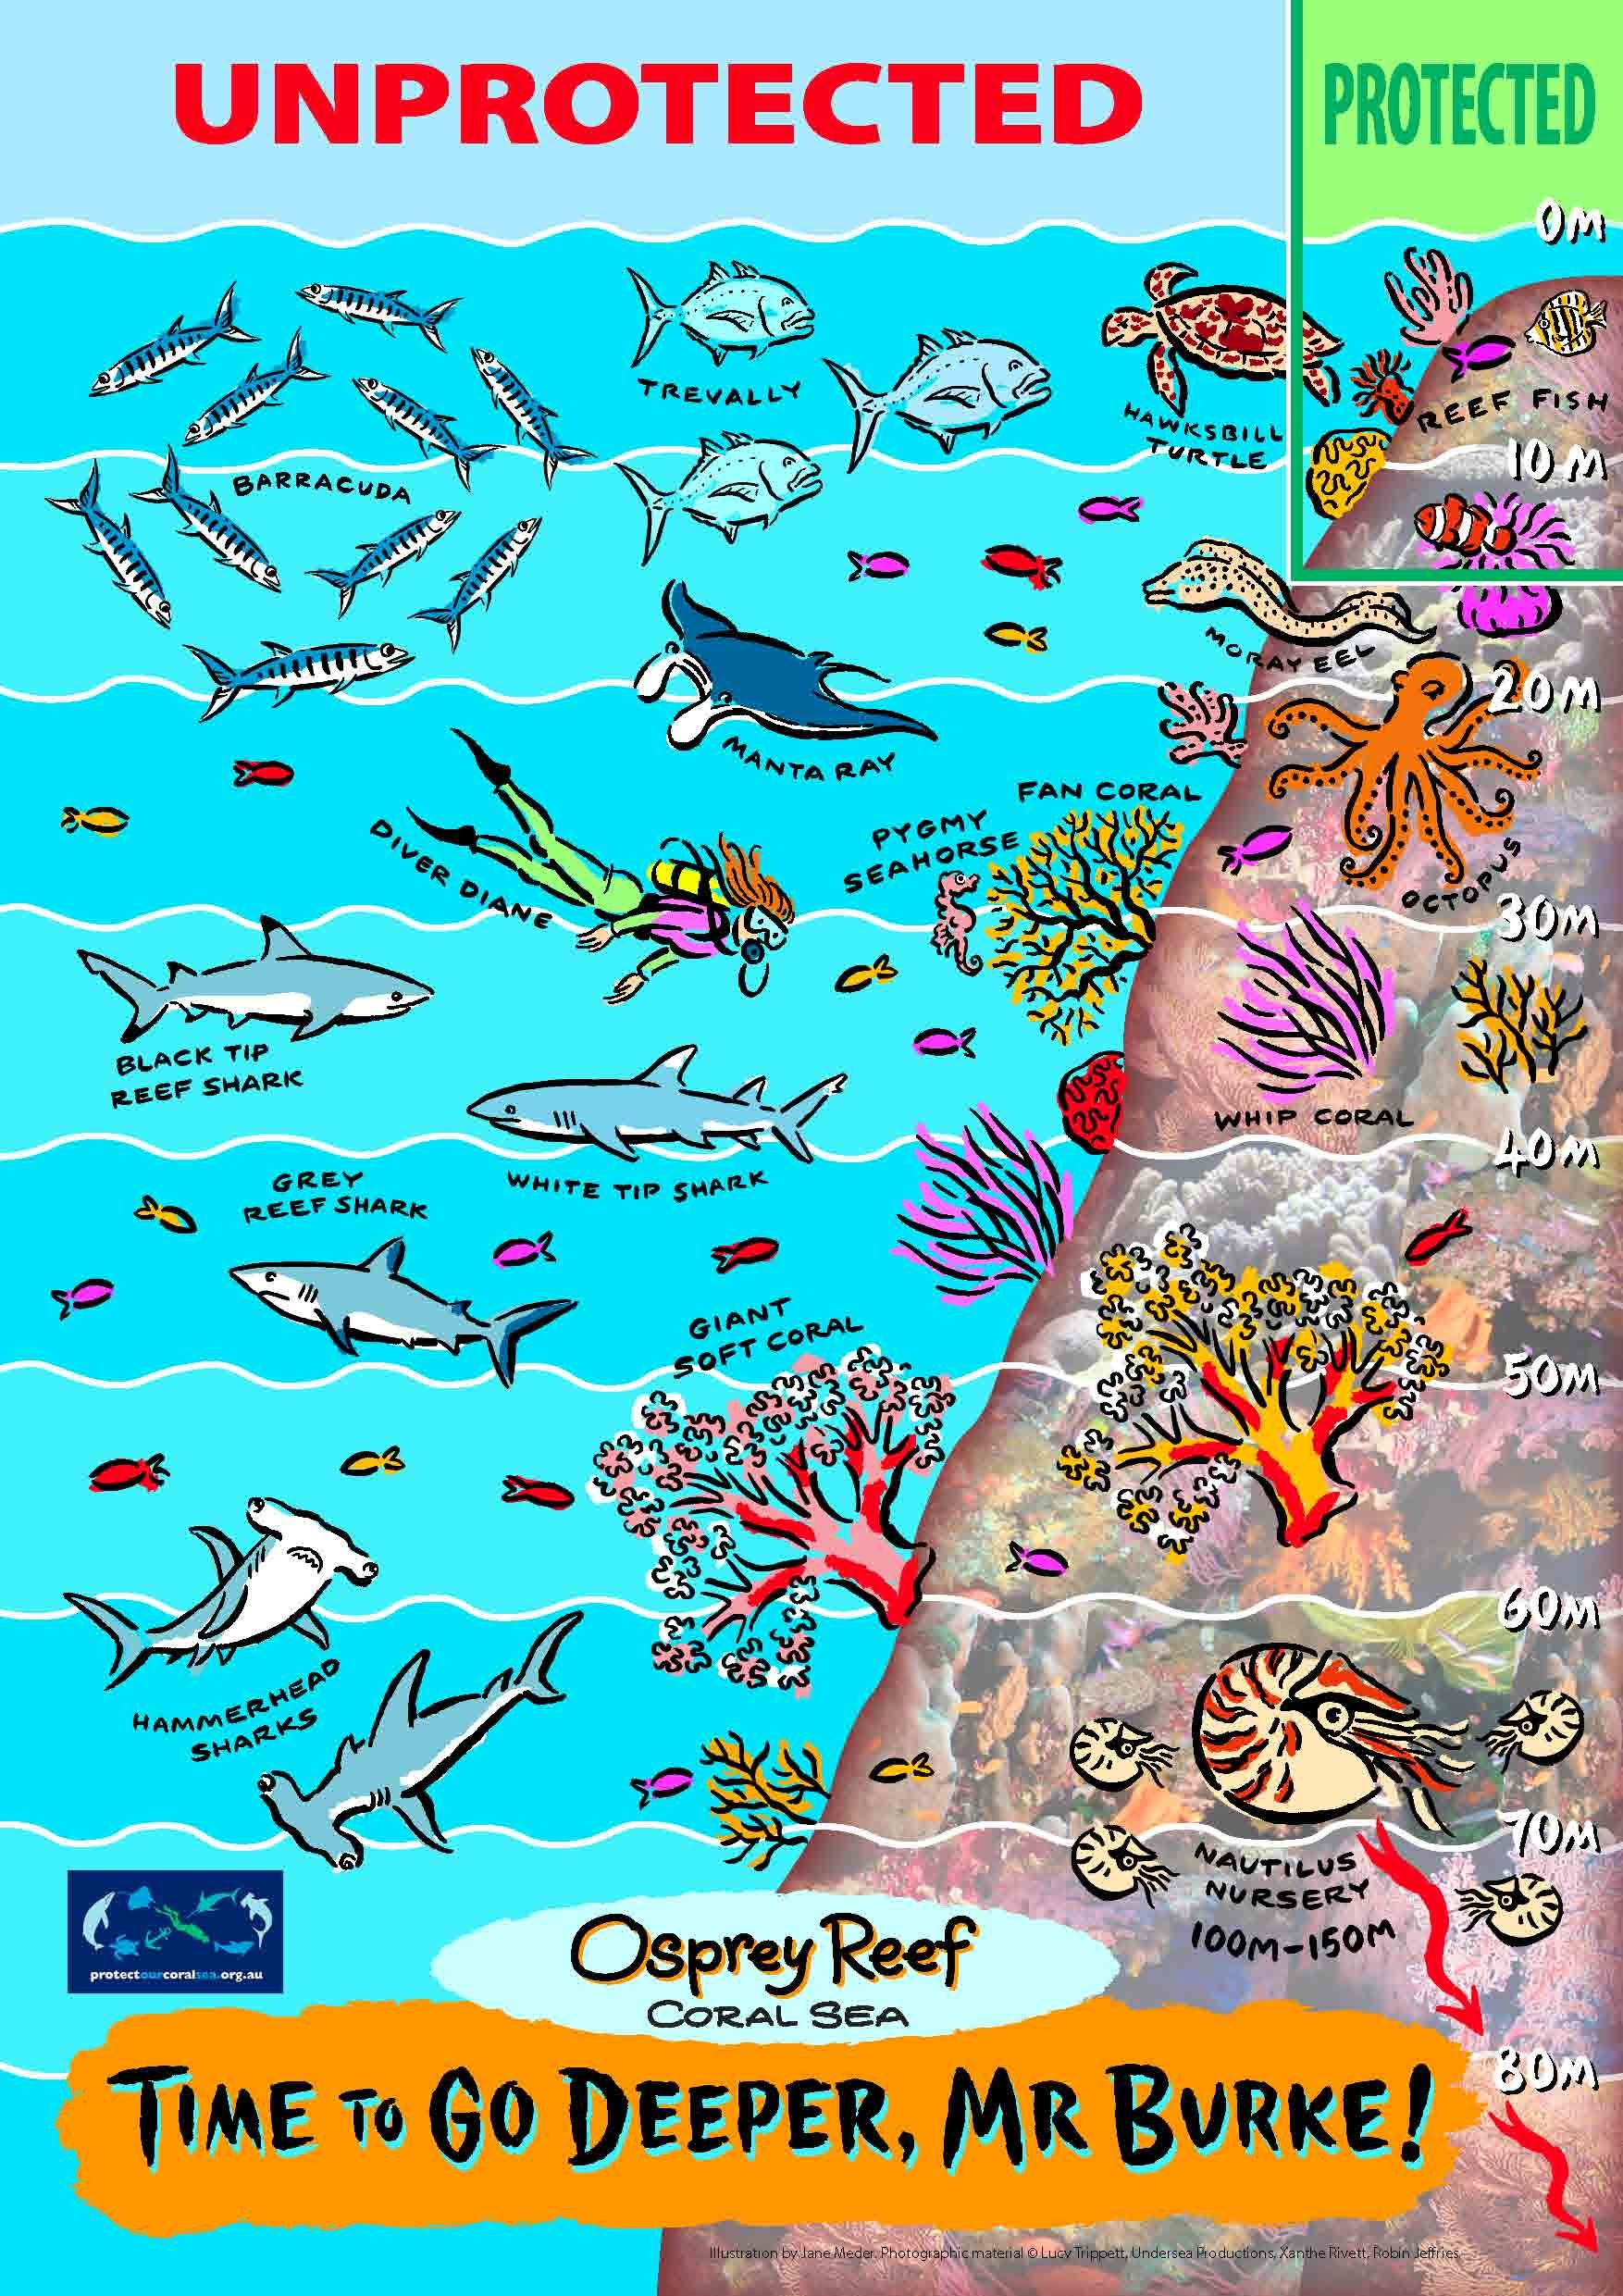 Marine reserves under threat. Tell Australian Env Minister 'It's Time to Go Deeper!' The Osprey Reef in Coral Sea needs more protection. Send your letter to Tony Burke